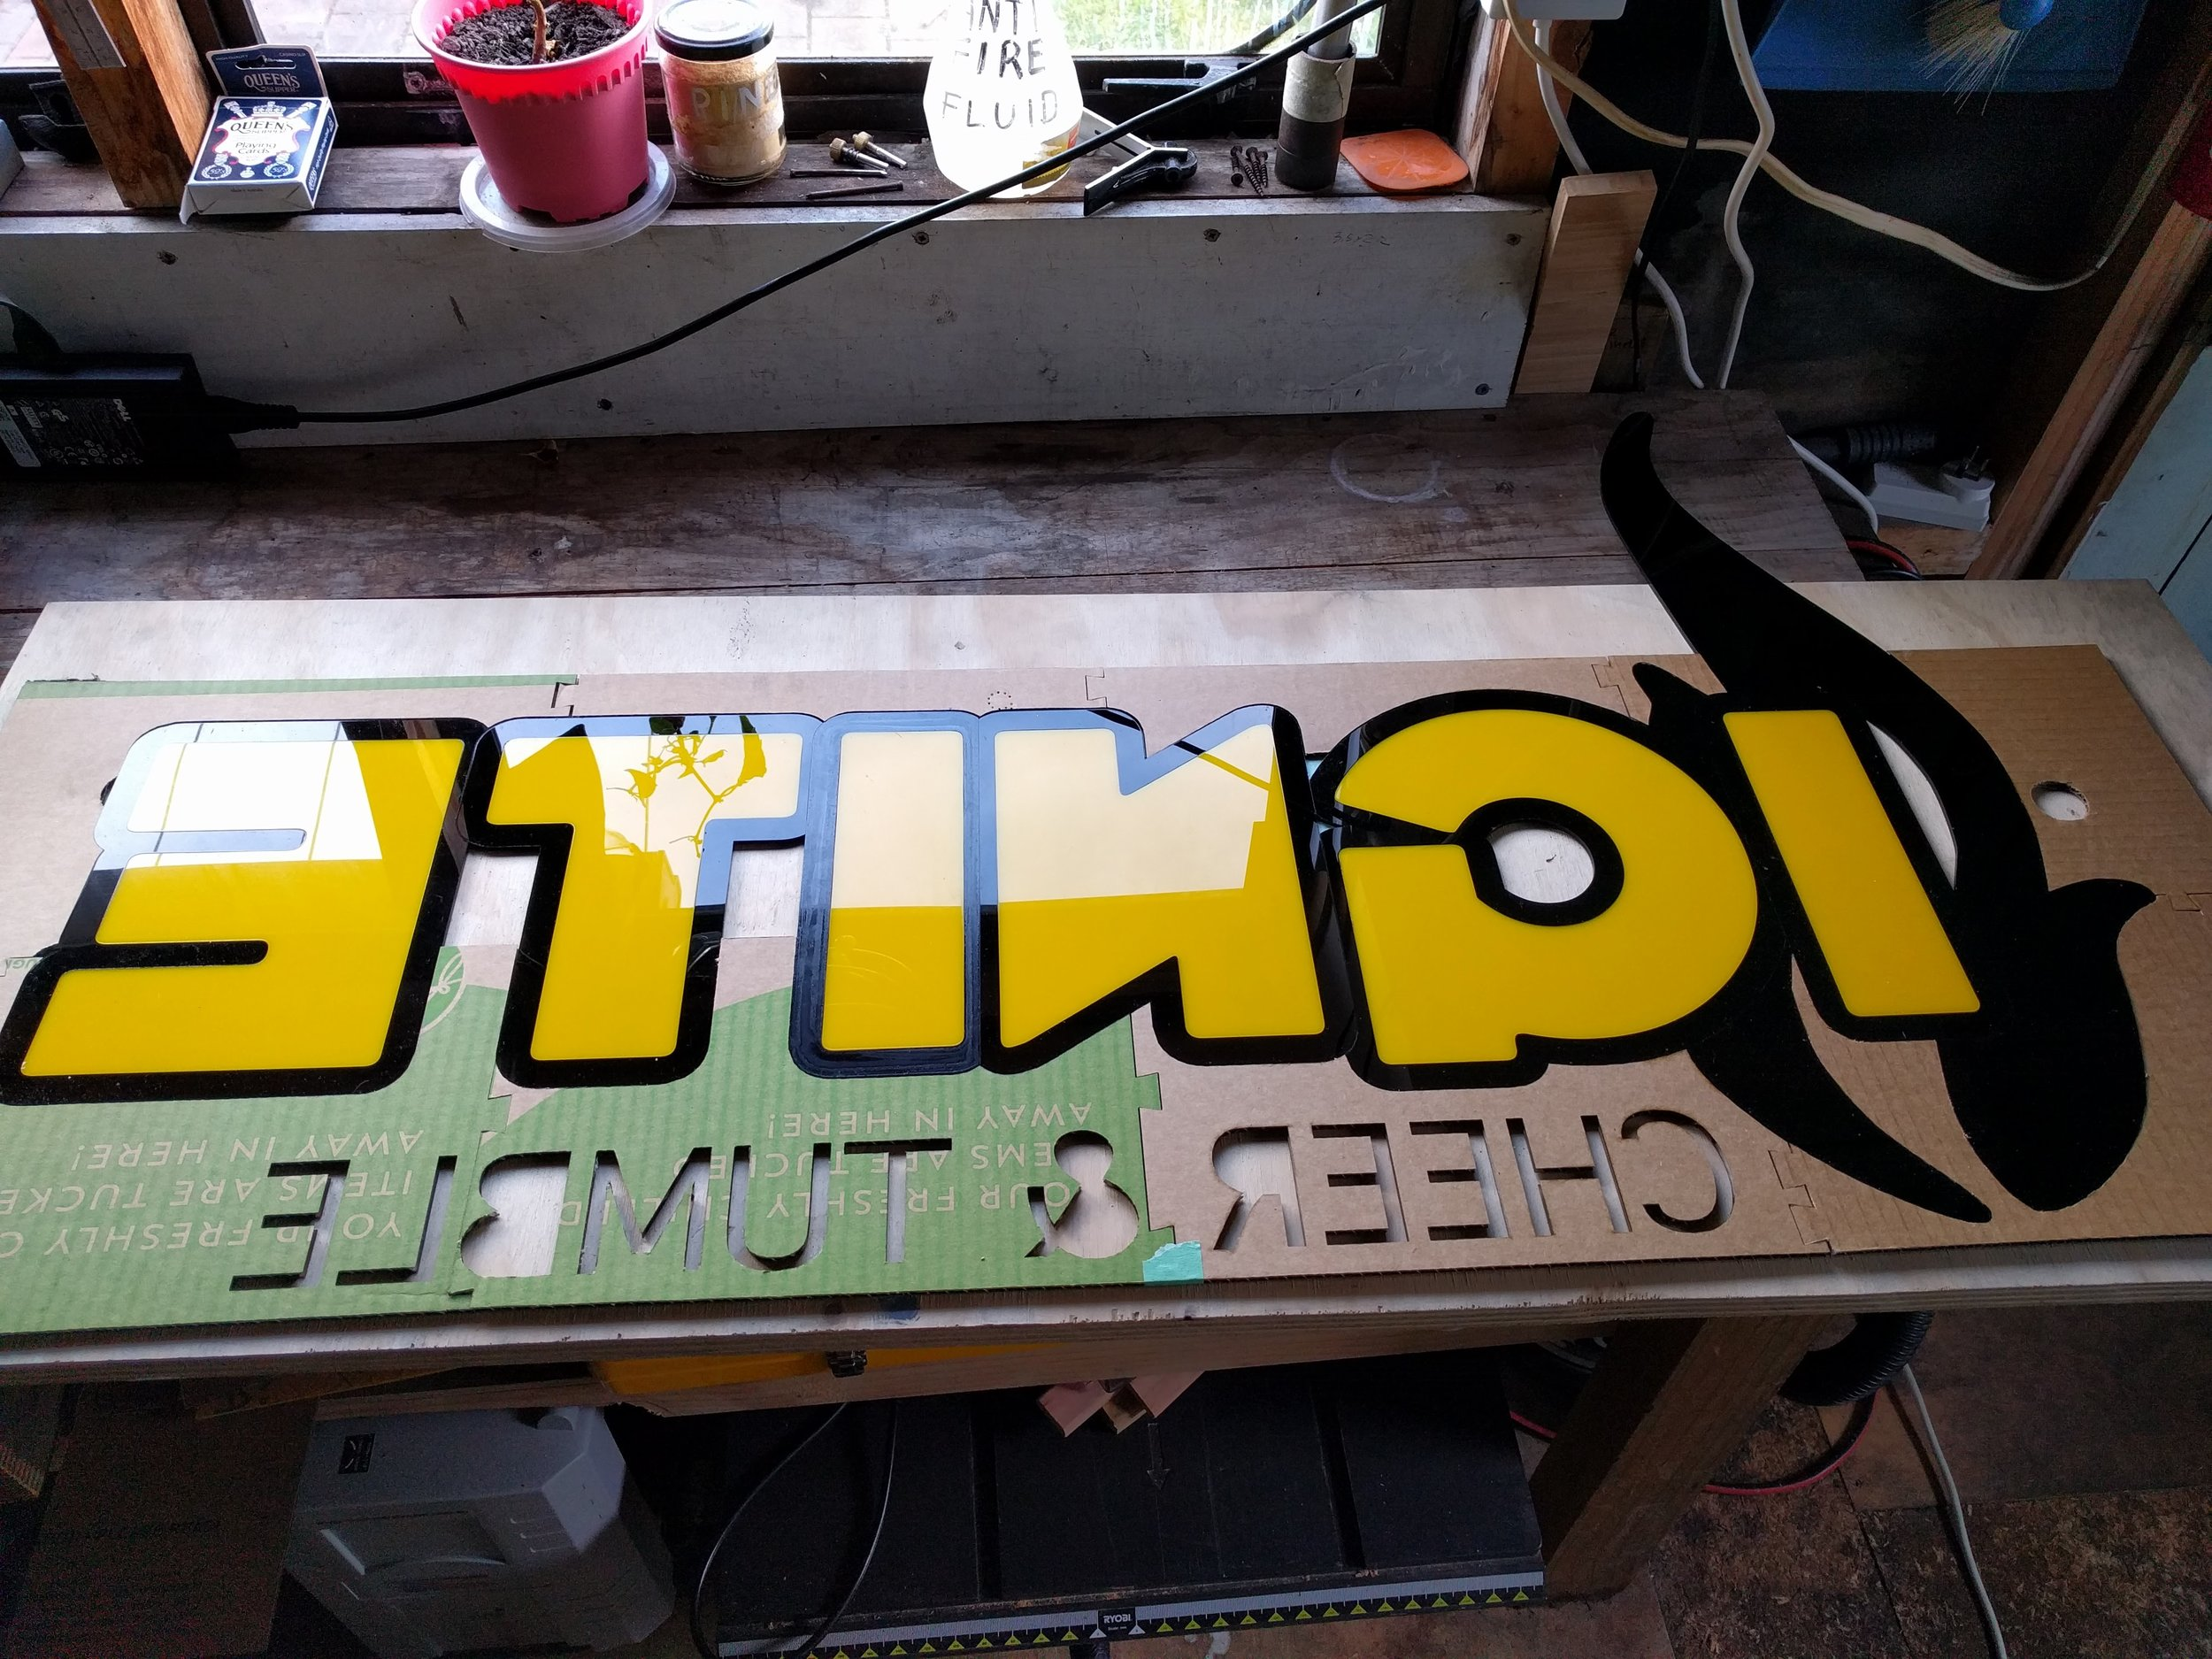 WIP Ignite Cheer & Tumble reception desk signage